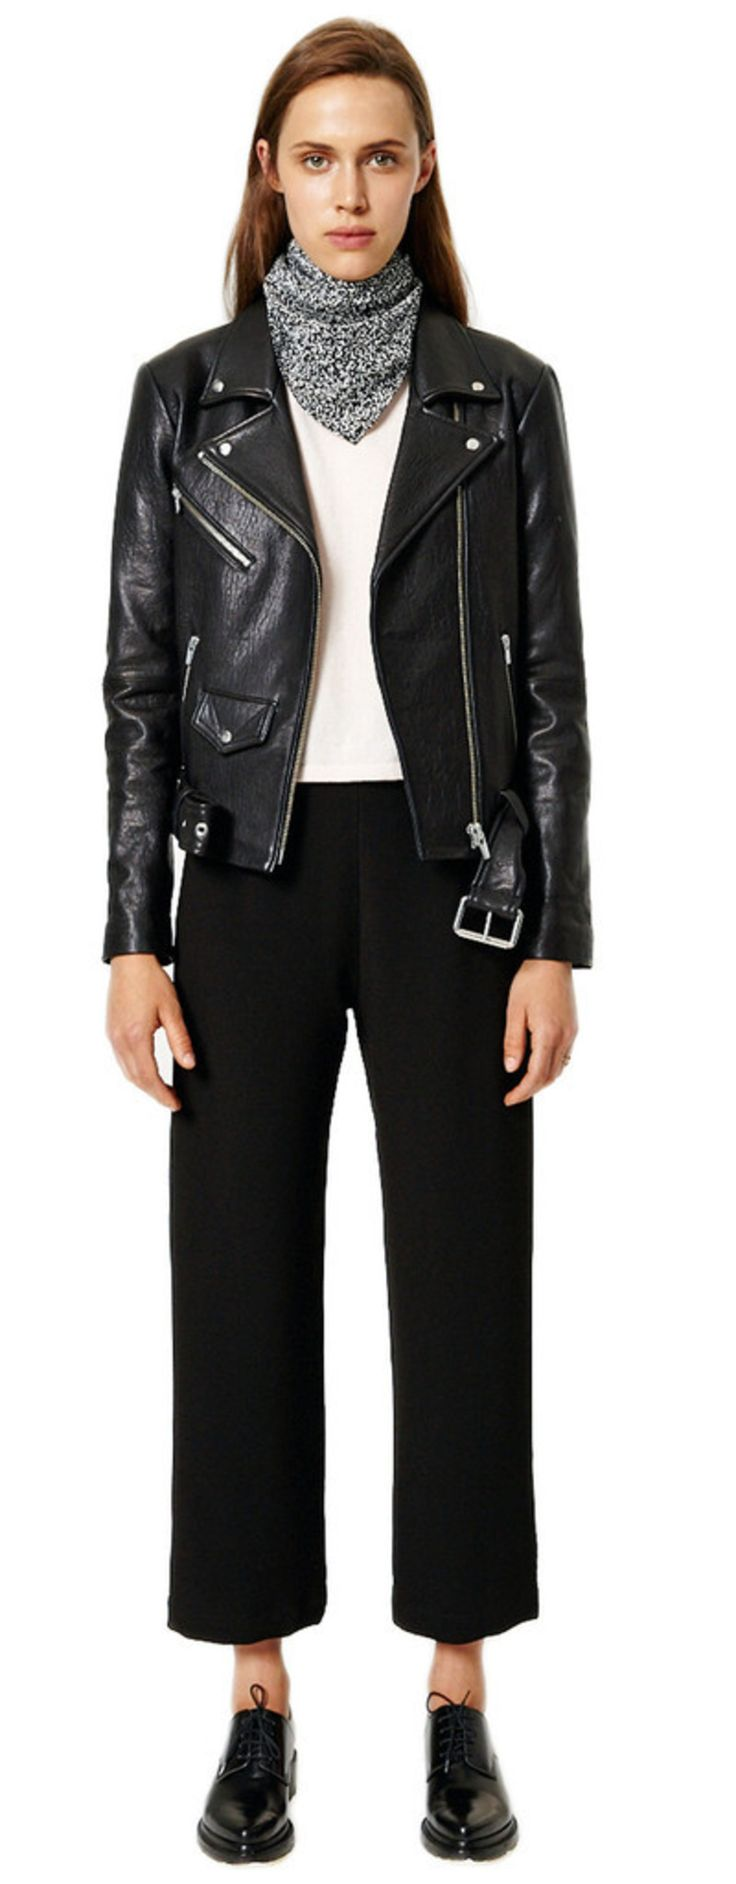 Veda Jayne Classic black leather biker jacket  Fabric: Leather. 100% cotton lining. Dry clean sparingly. Made in the USA.